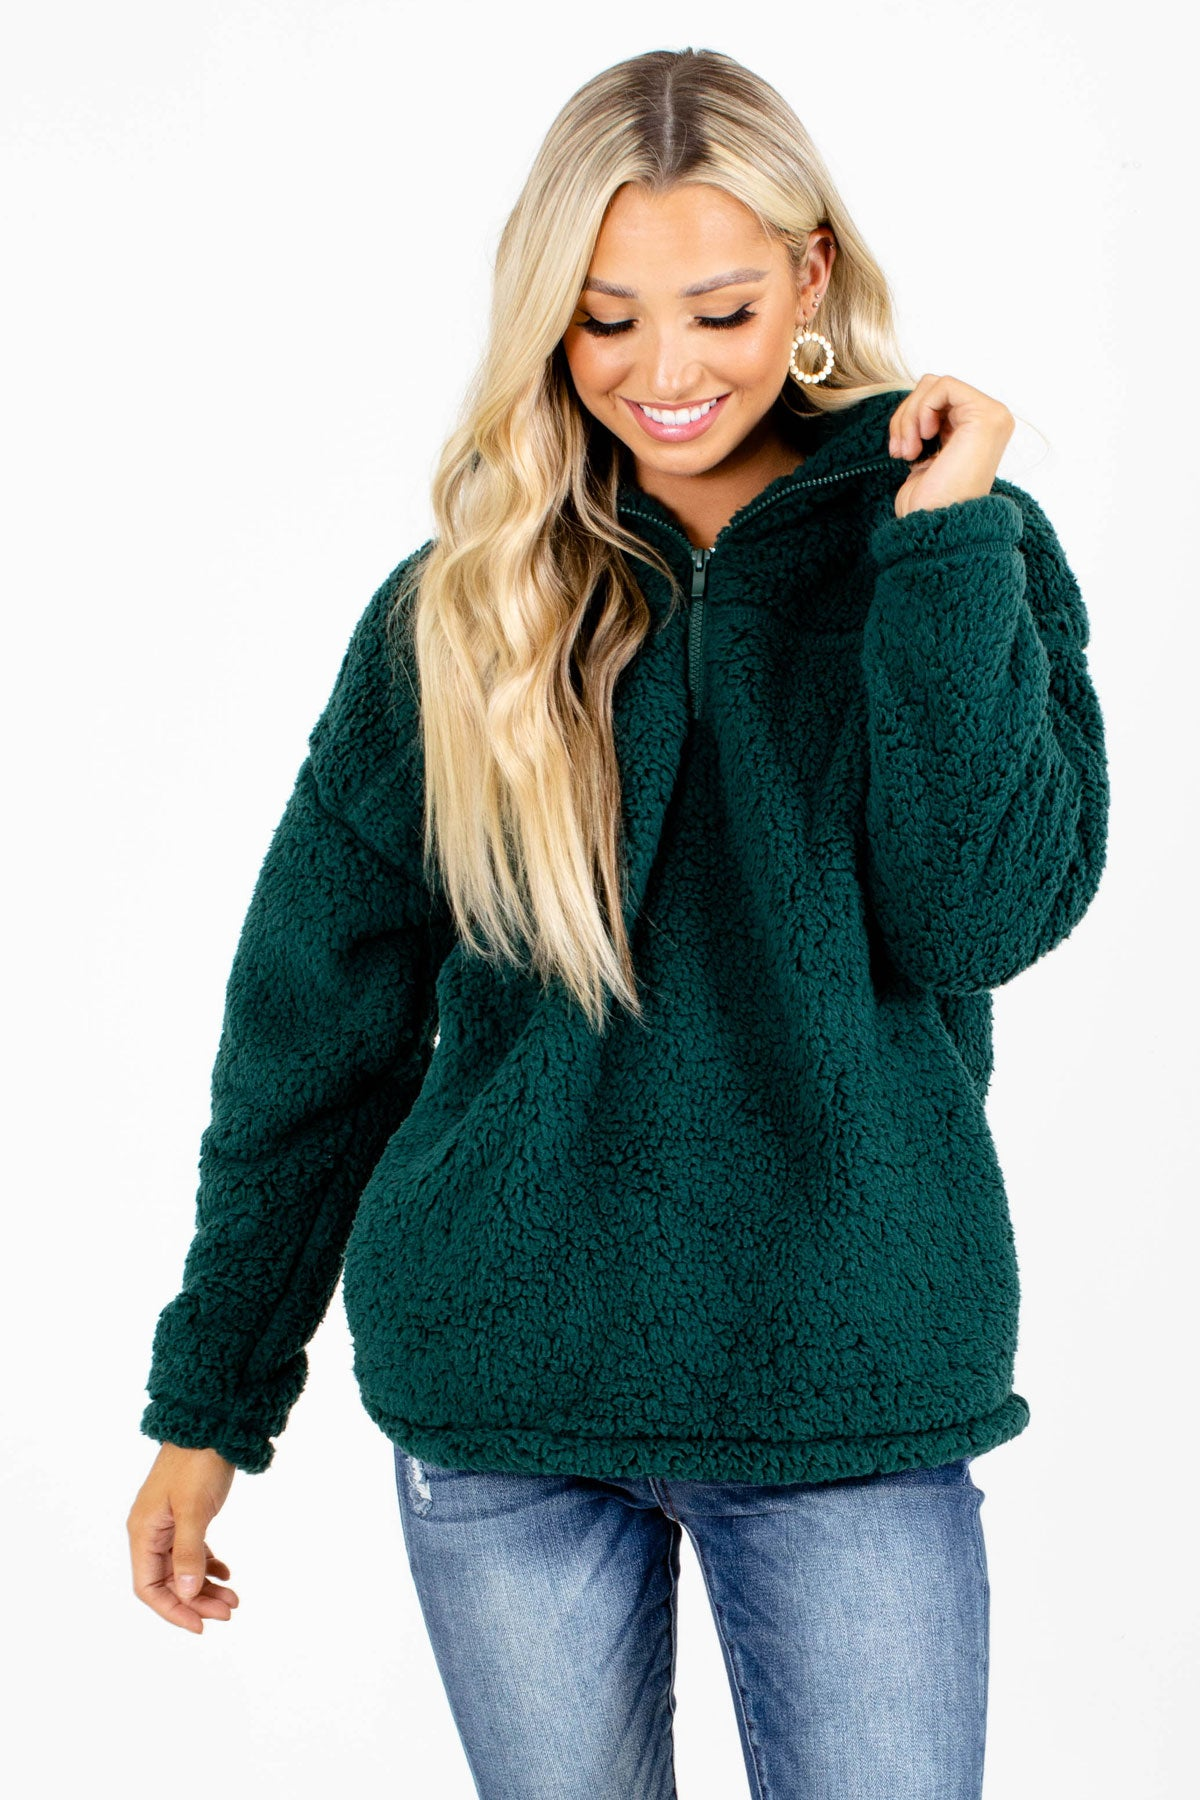 Dark Green Zip-Up Neckline Boutique Pullovers for Women